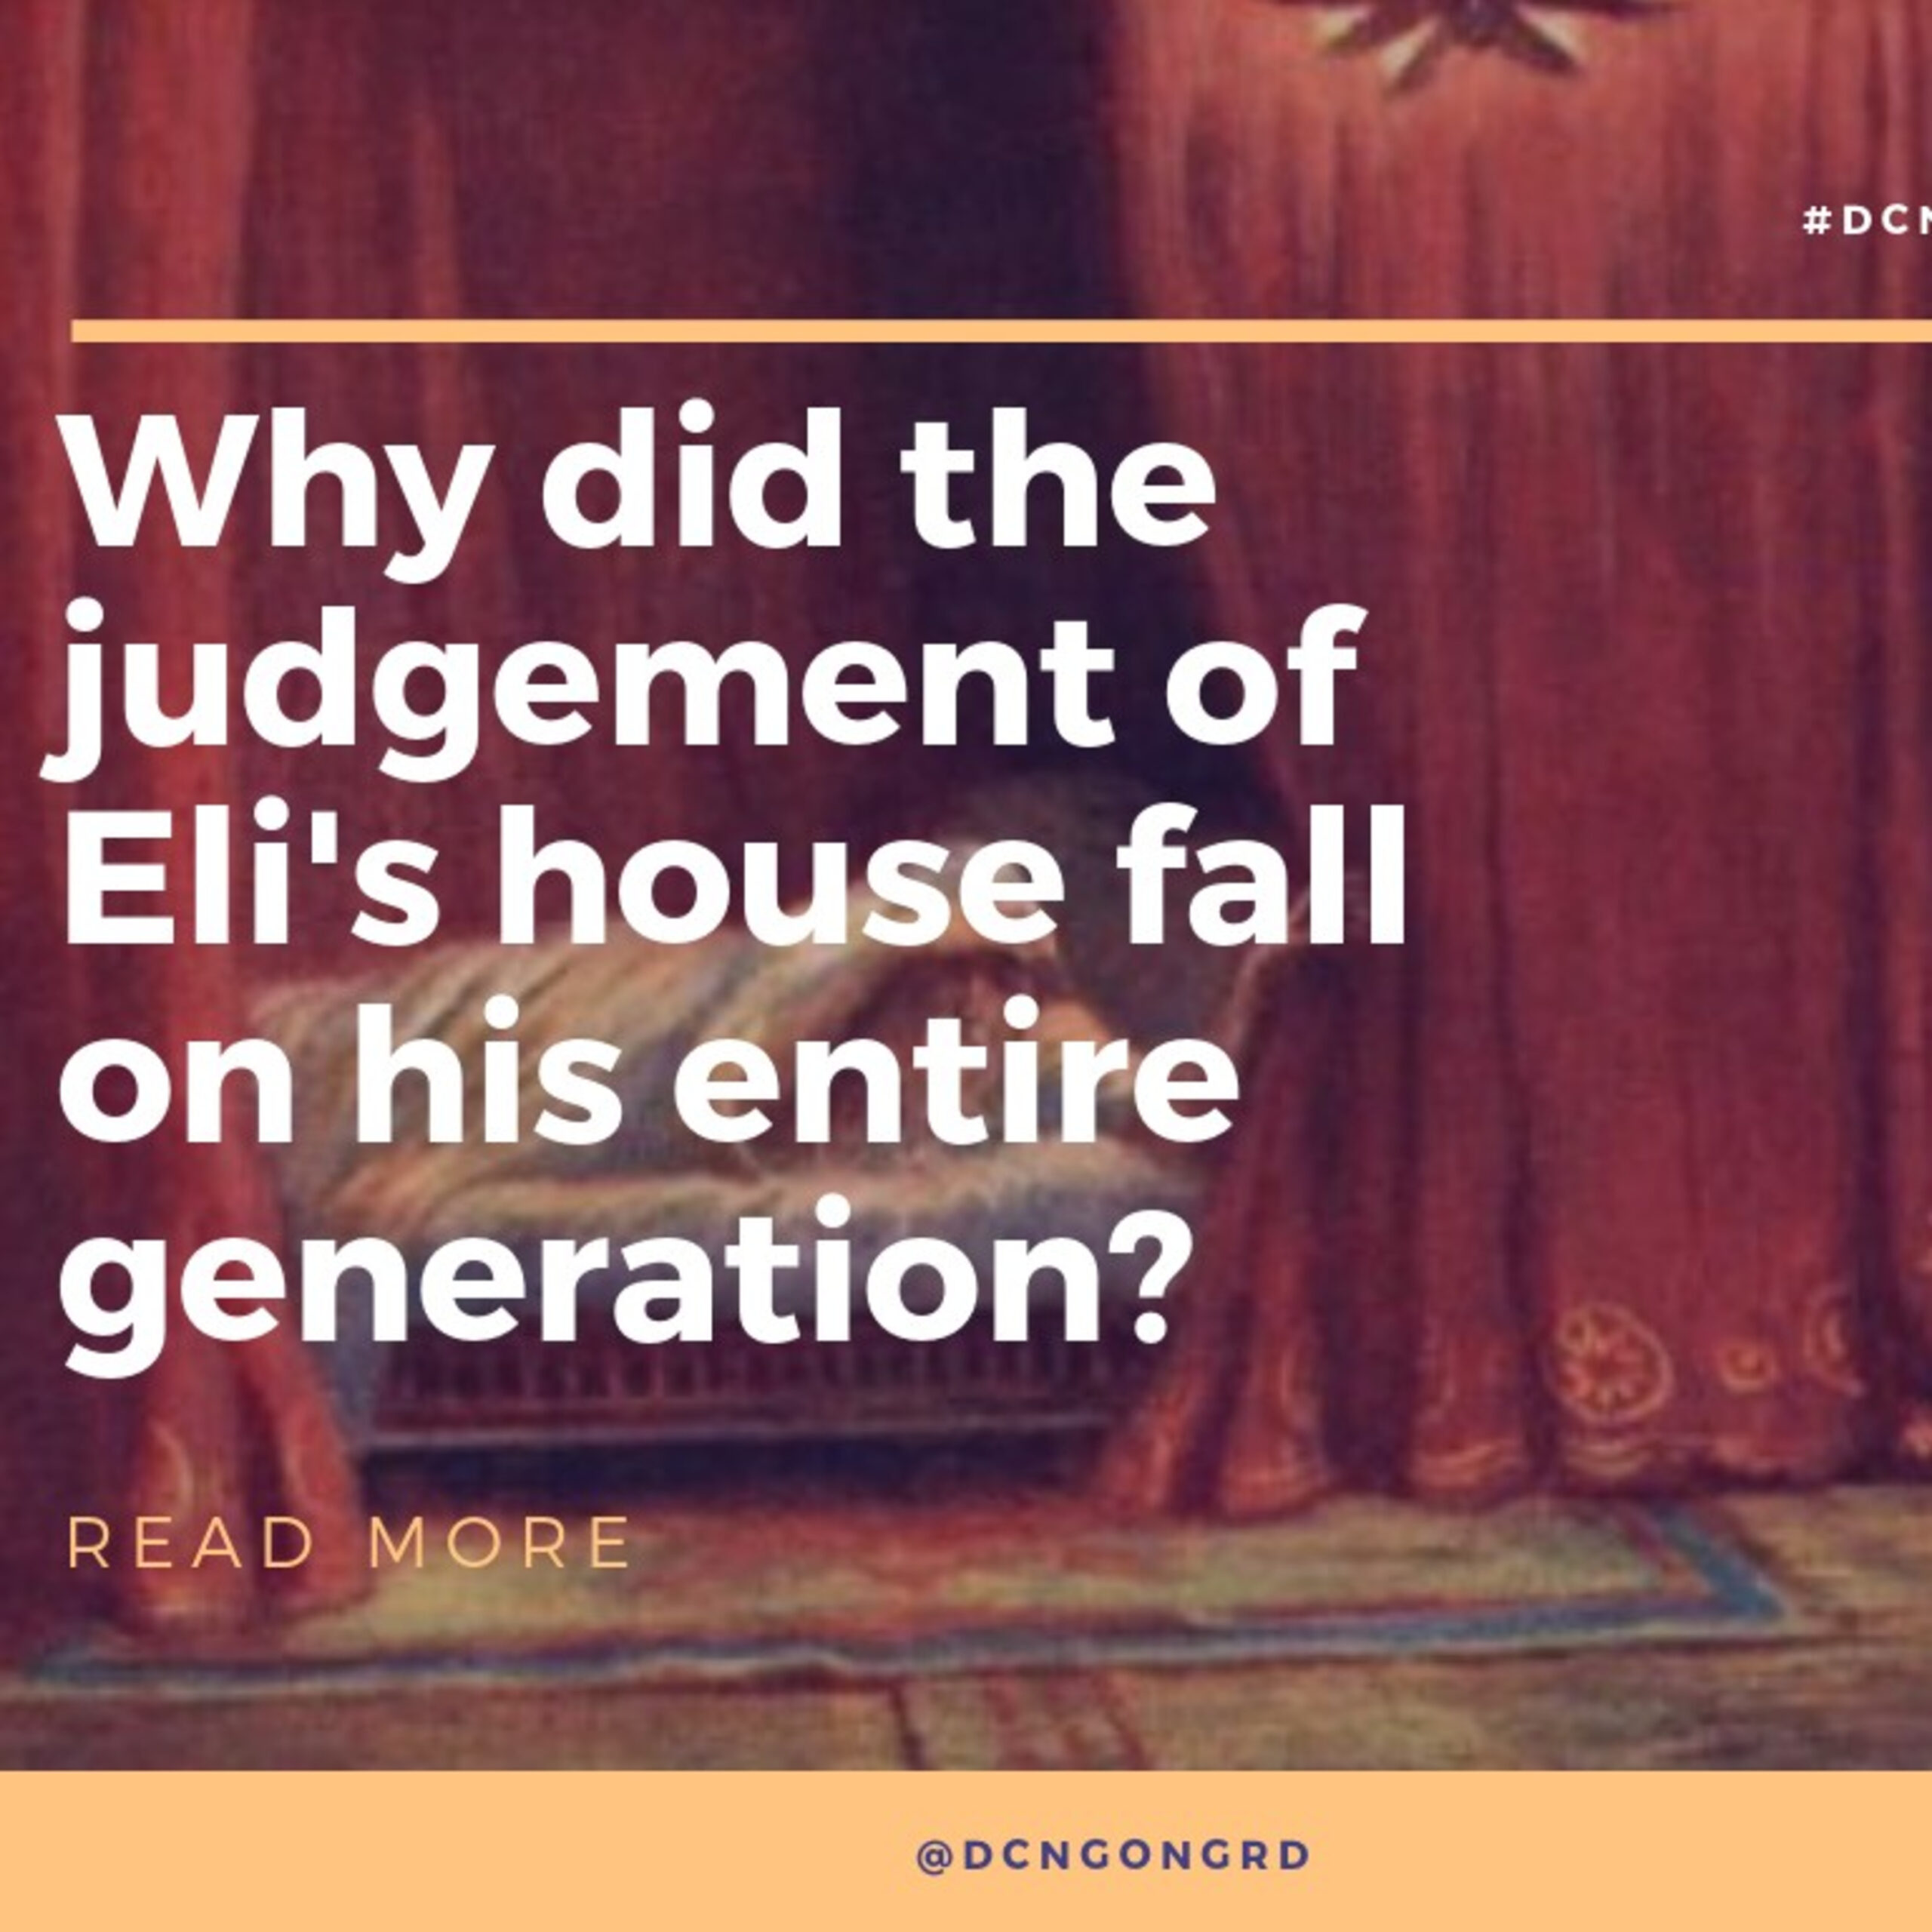 Why did the judgement on Eli's house fall on the entire generation?